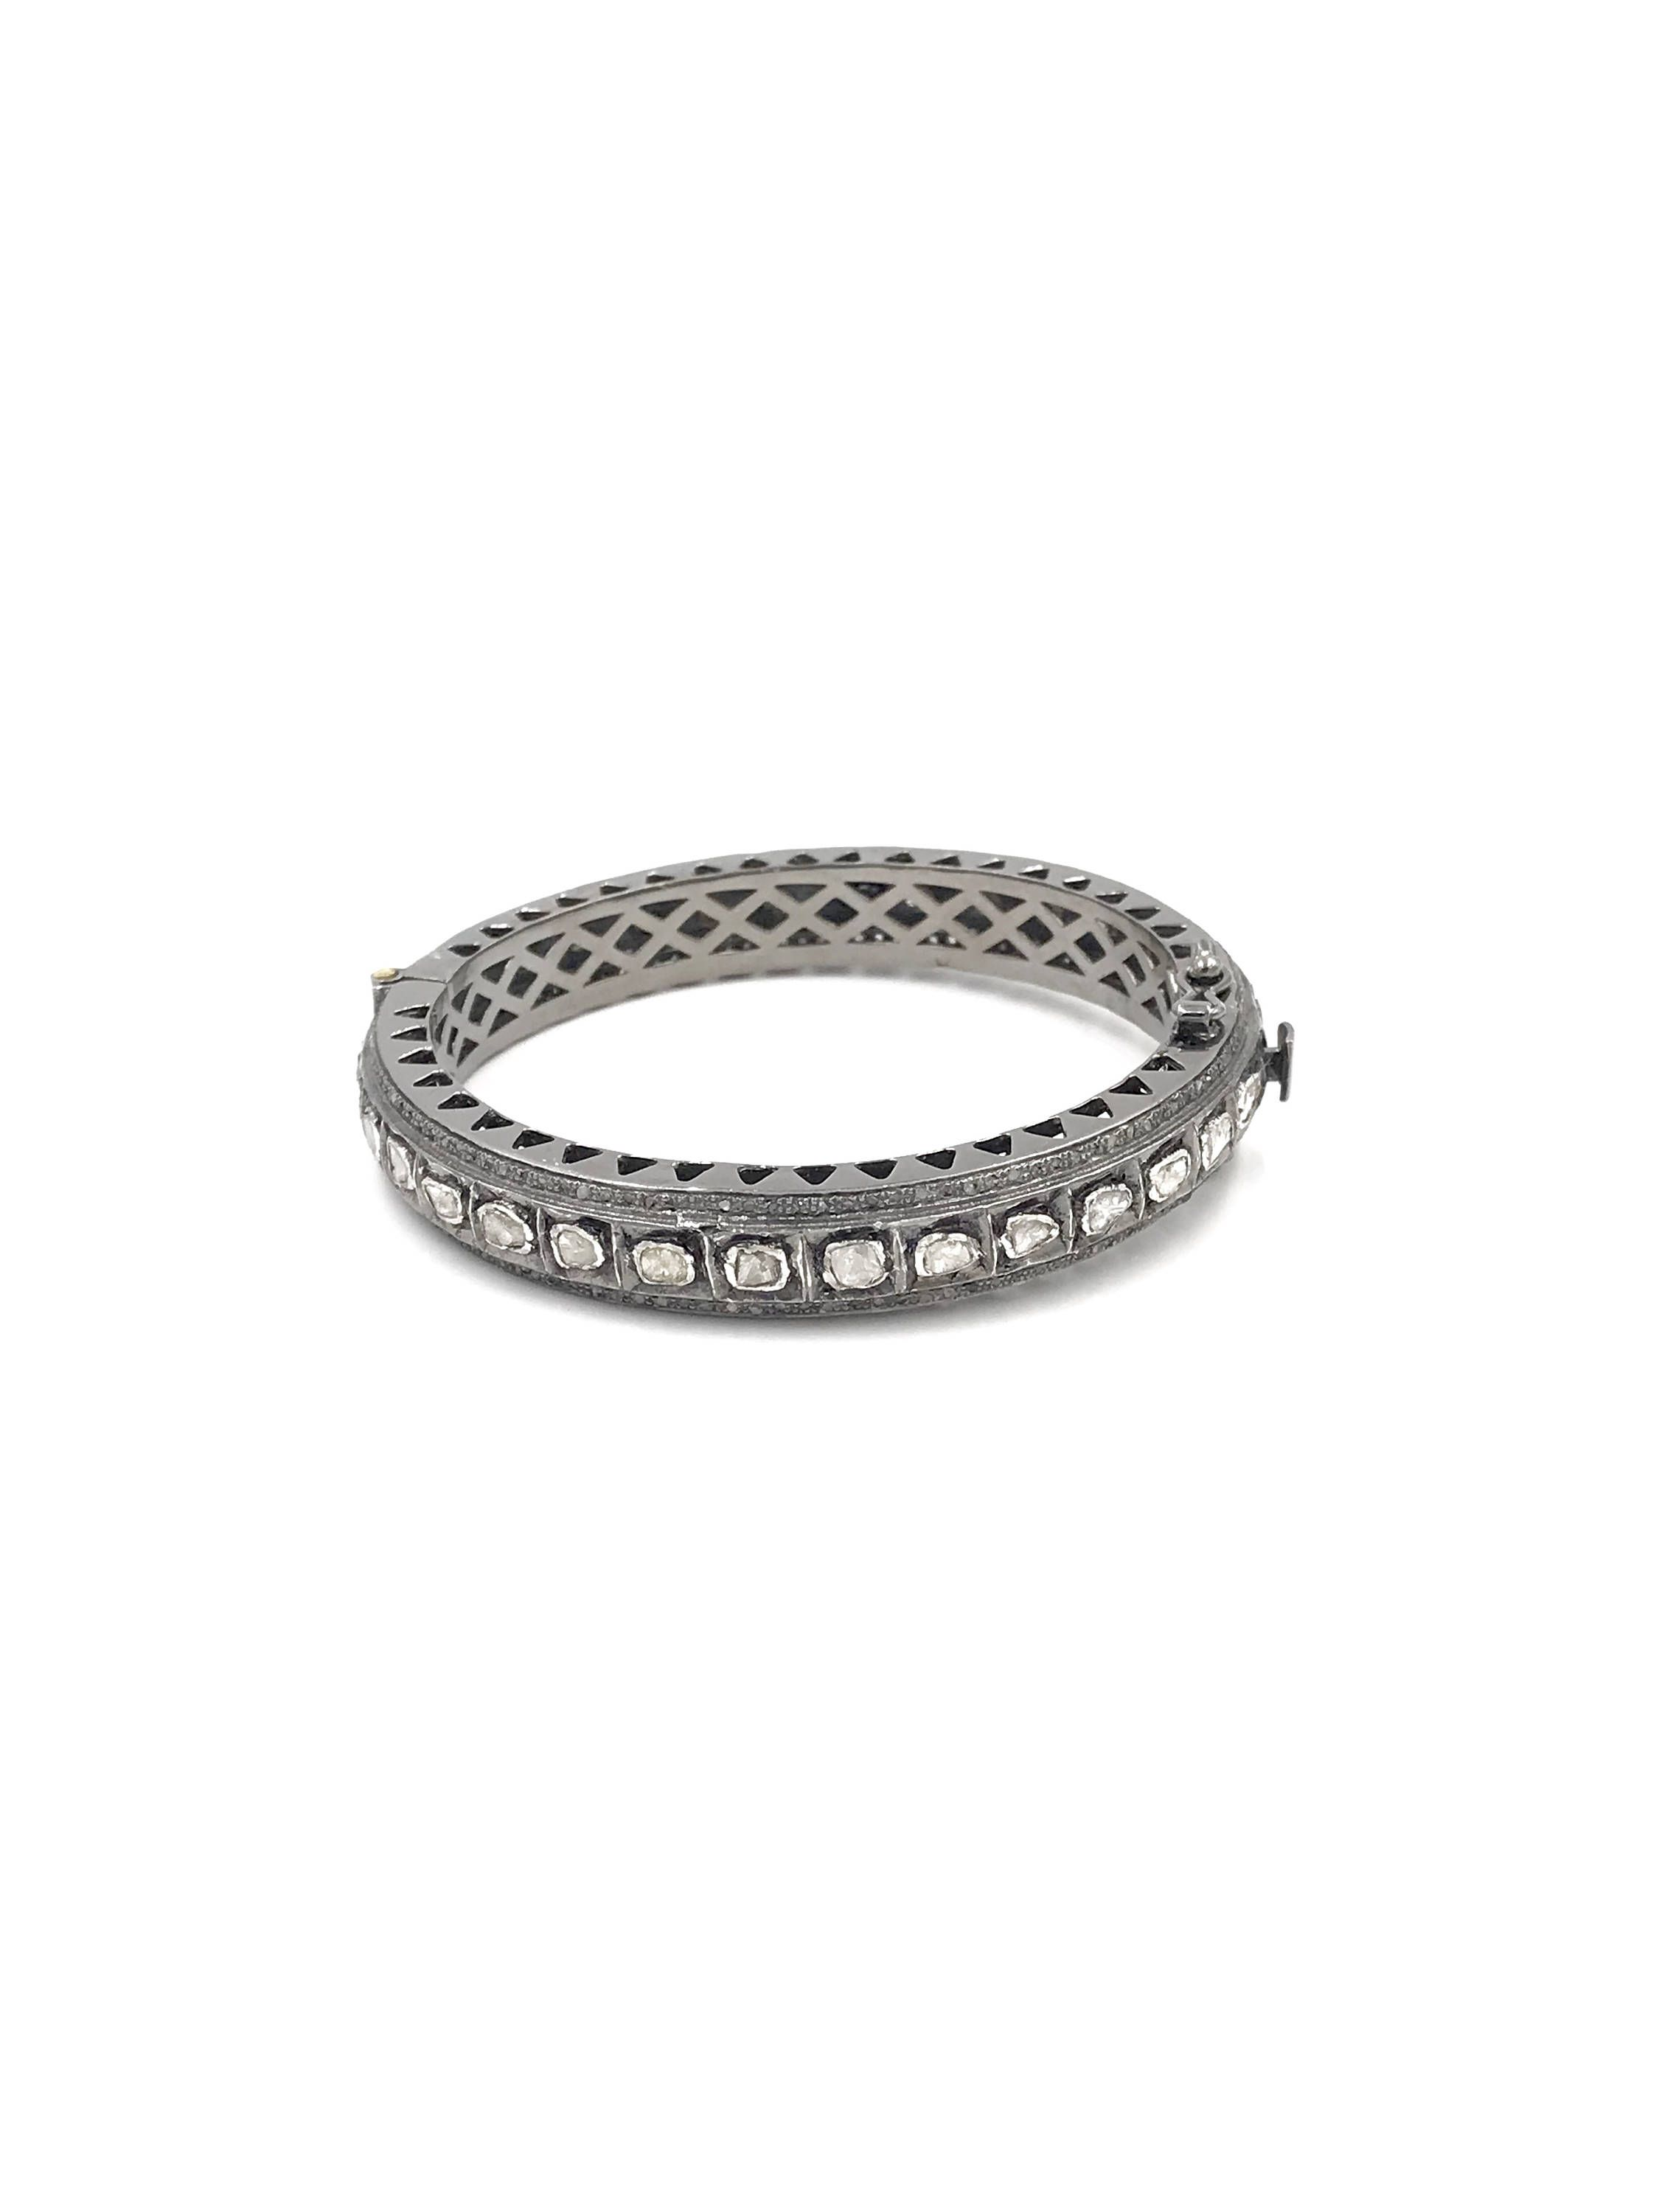 bangles products cut image bracelets thumbnail simulated diamond collections row bracelet lab mens two sterling silver round original bangle